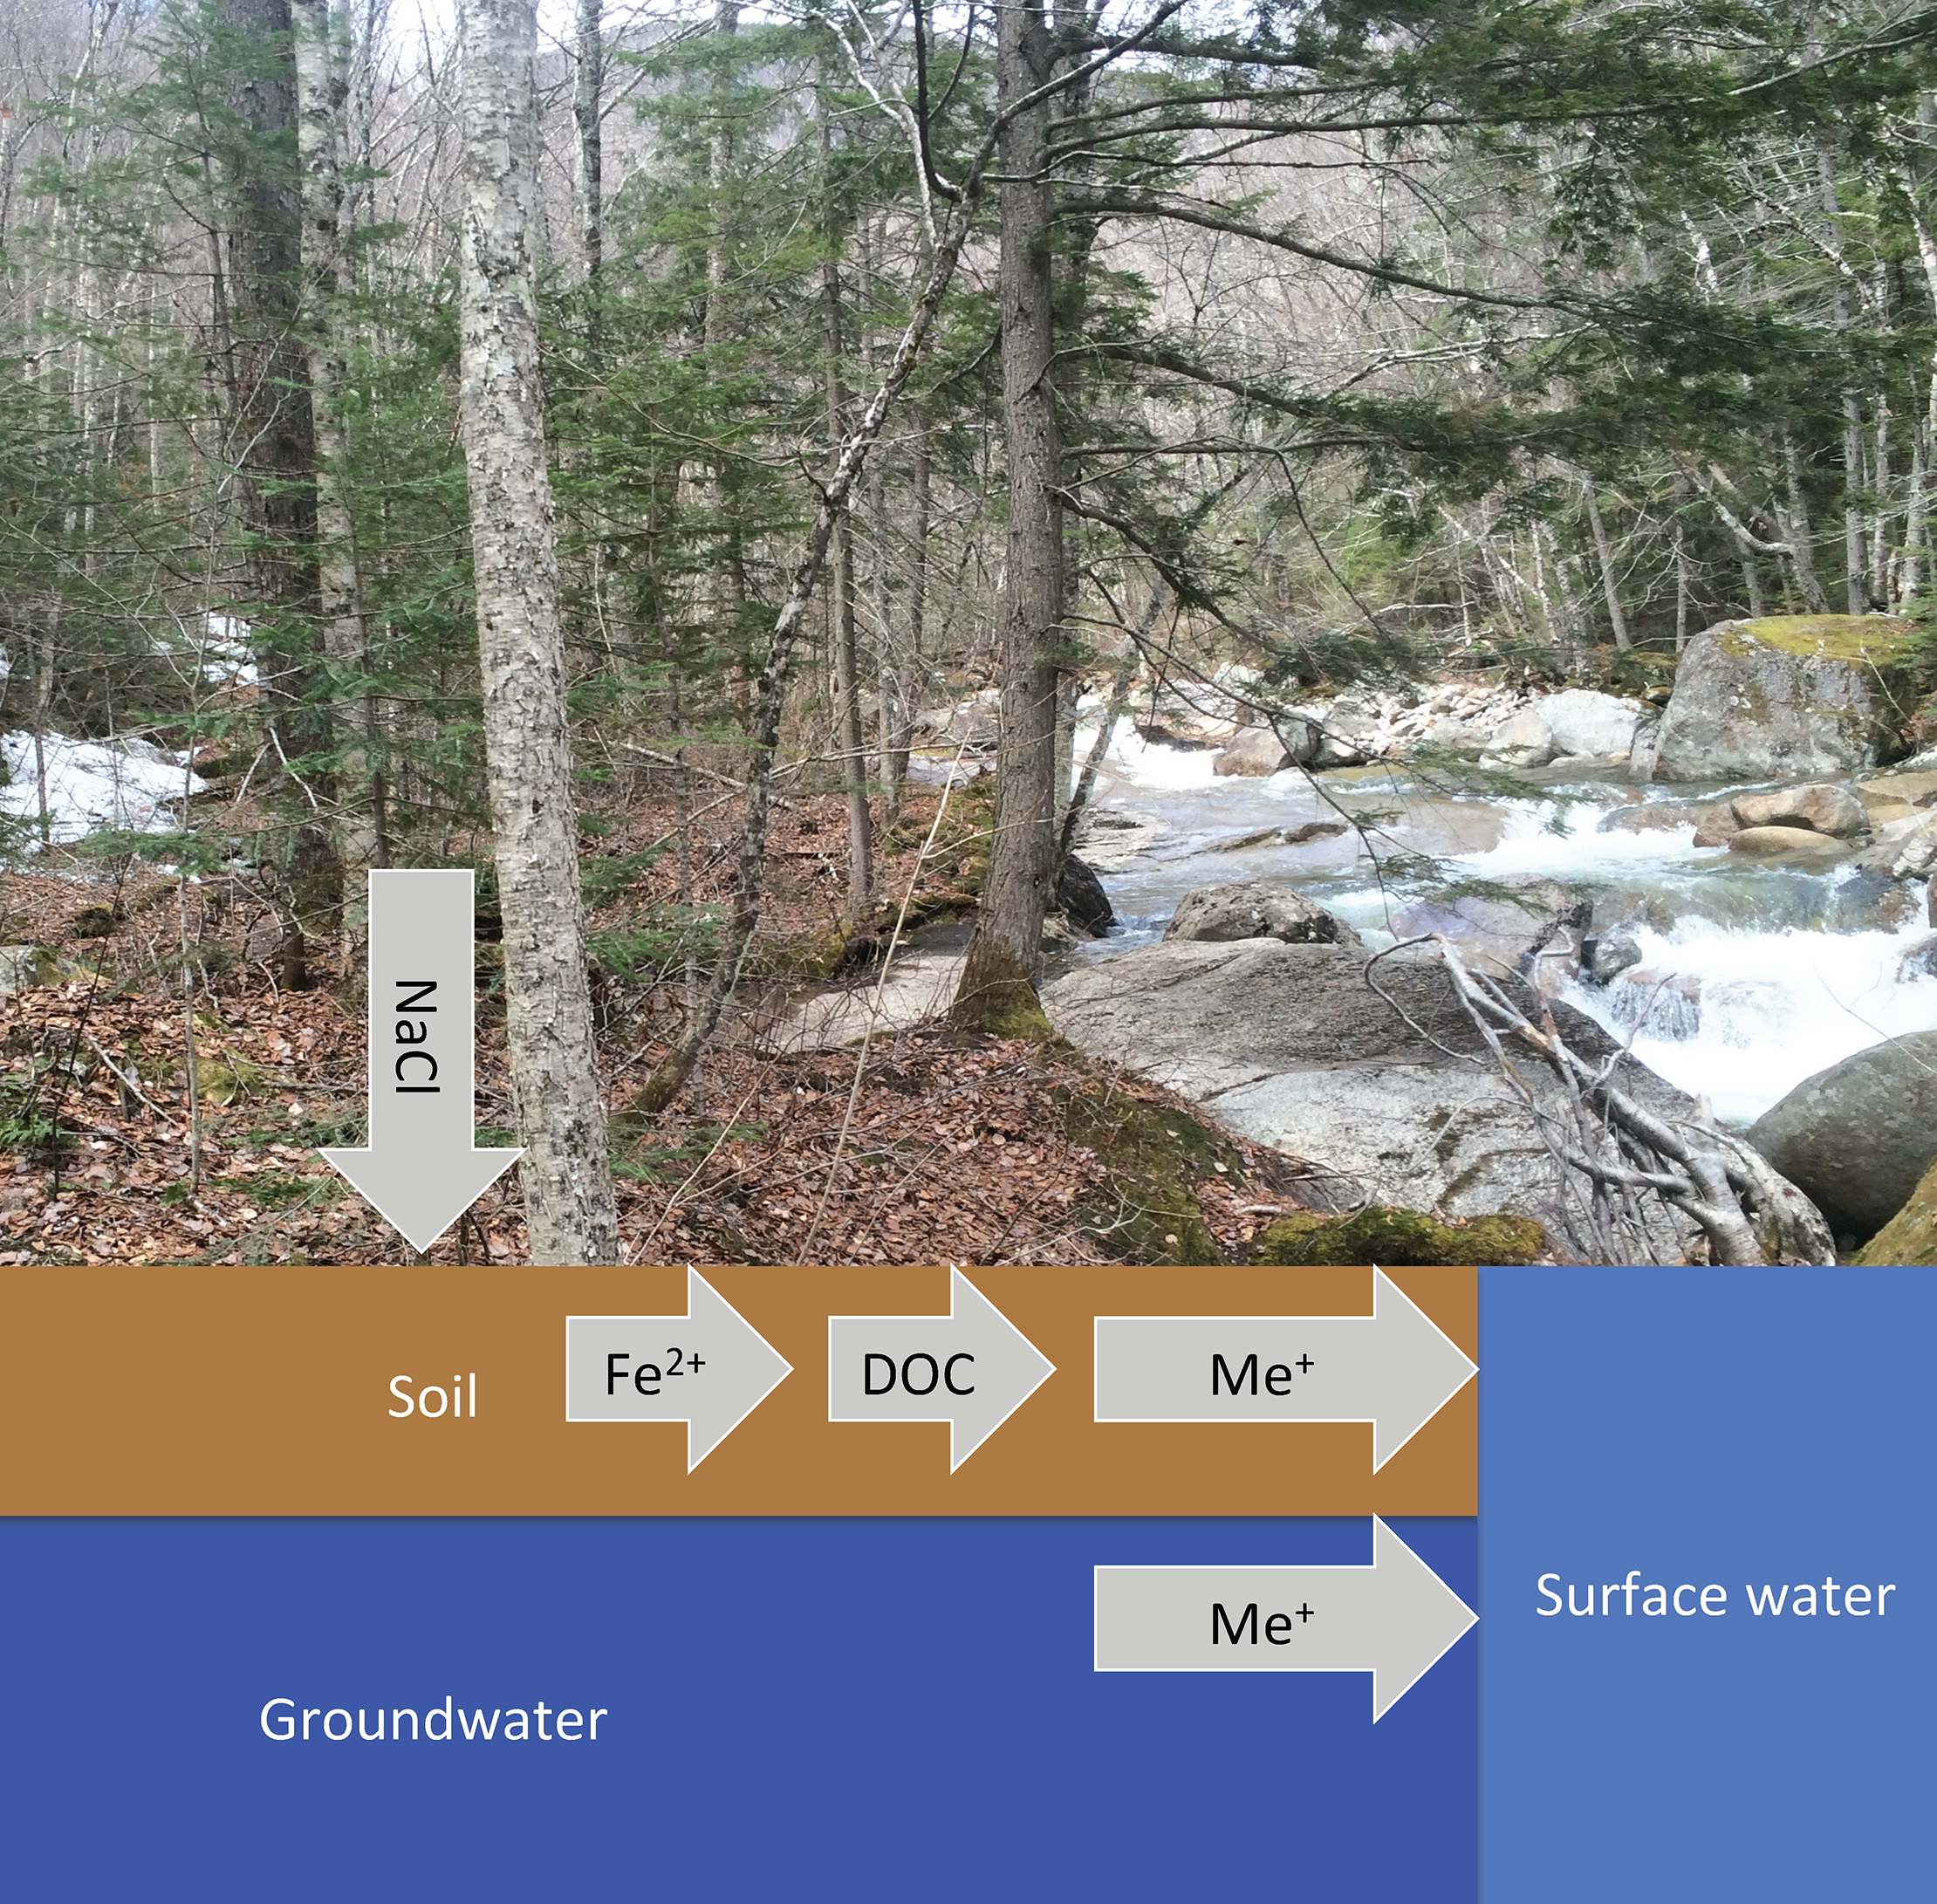 """From """"Trace metals in Northern New England streams: Evaluating the role of road salt across broad spatial scales with synoptic snapshots"""" by J.F. Wilhelm D.J. Bain, M.B.Green, K.F.Bush, & W.H. McDowell"""